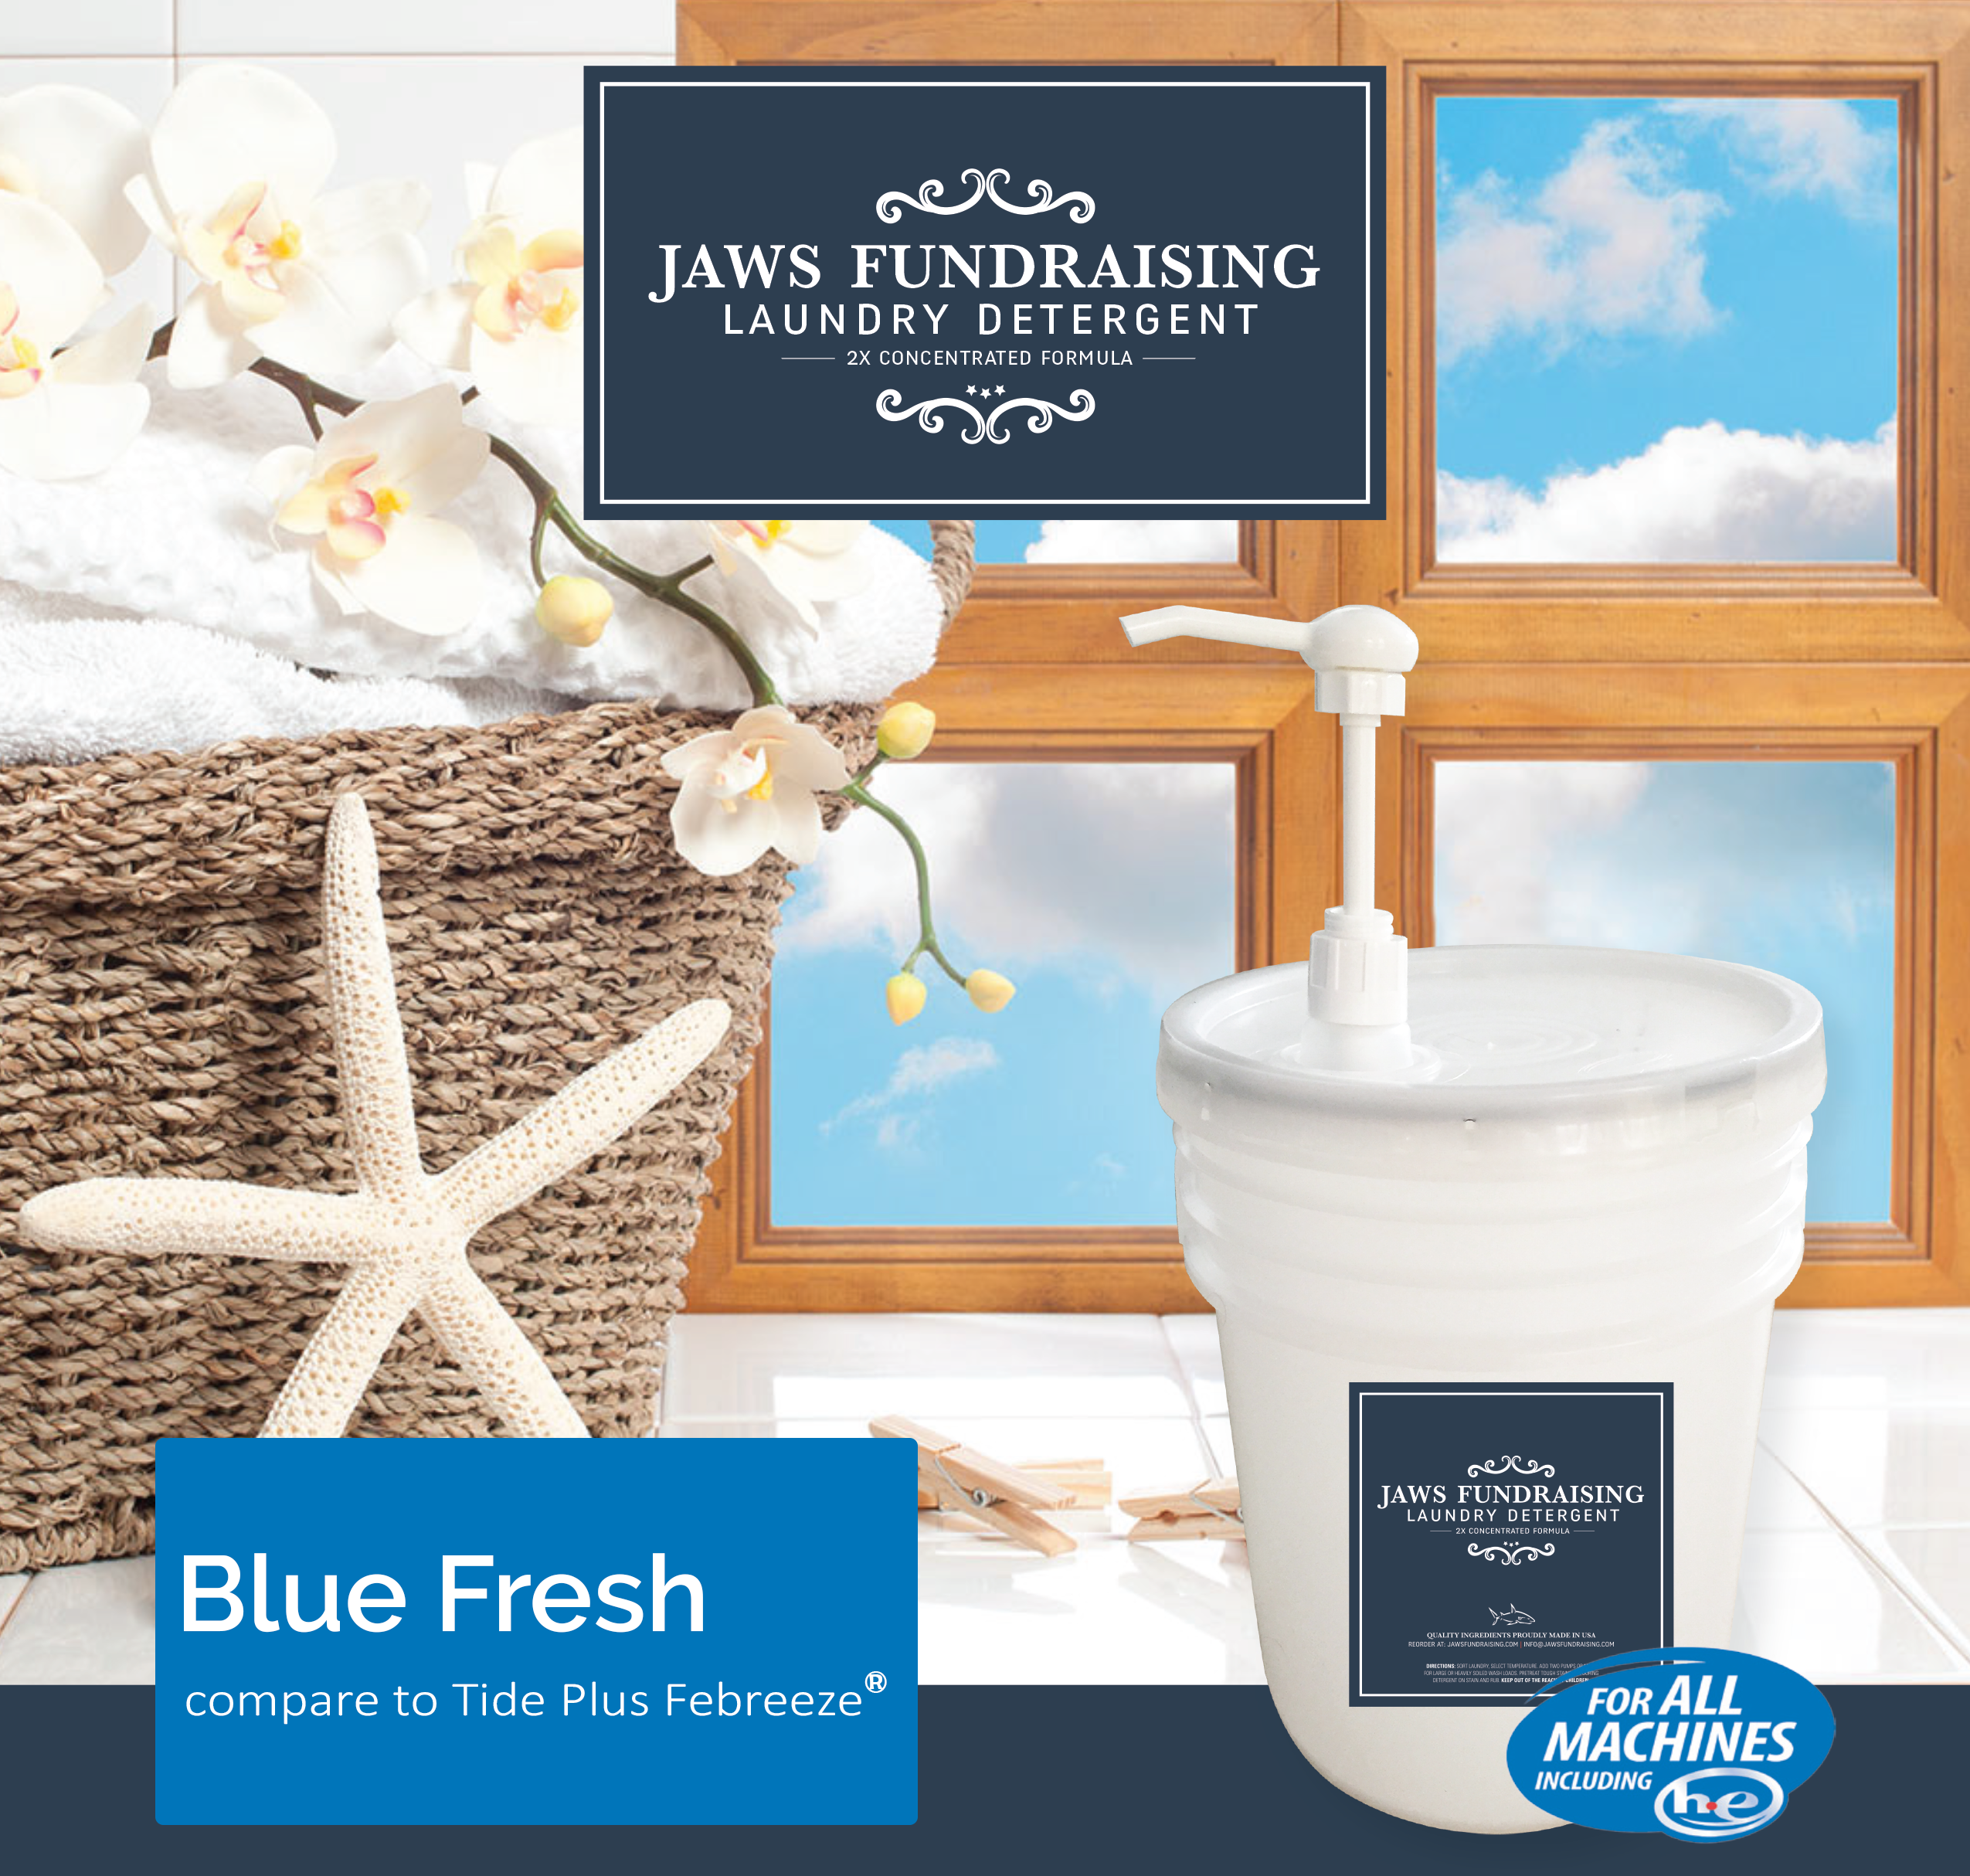 BRHS Band Booster Laundry Detergent/Blue Fresh Fundraiser - Bloodworth (Non Refundable)